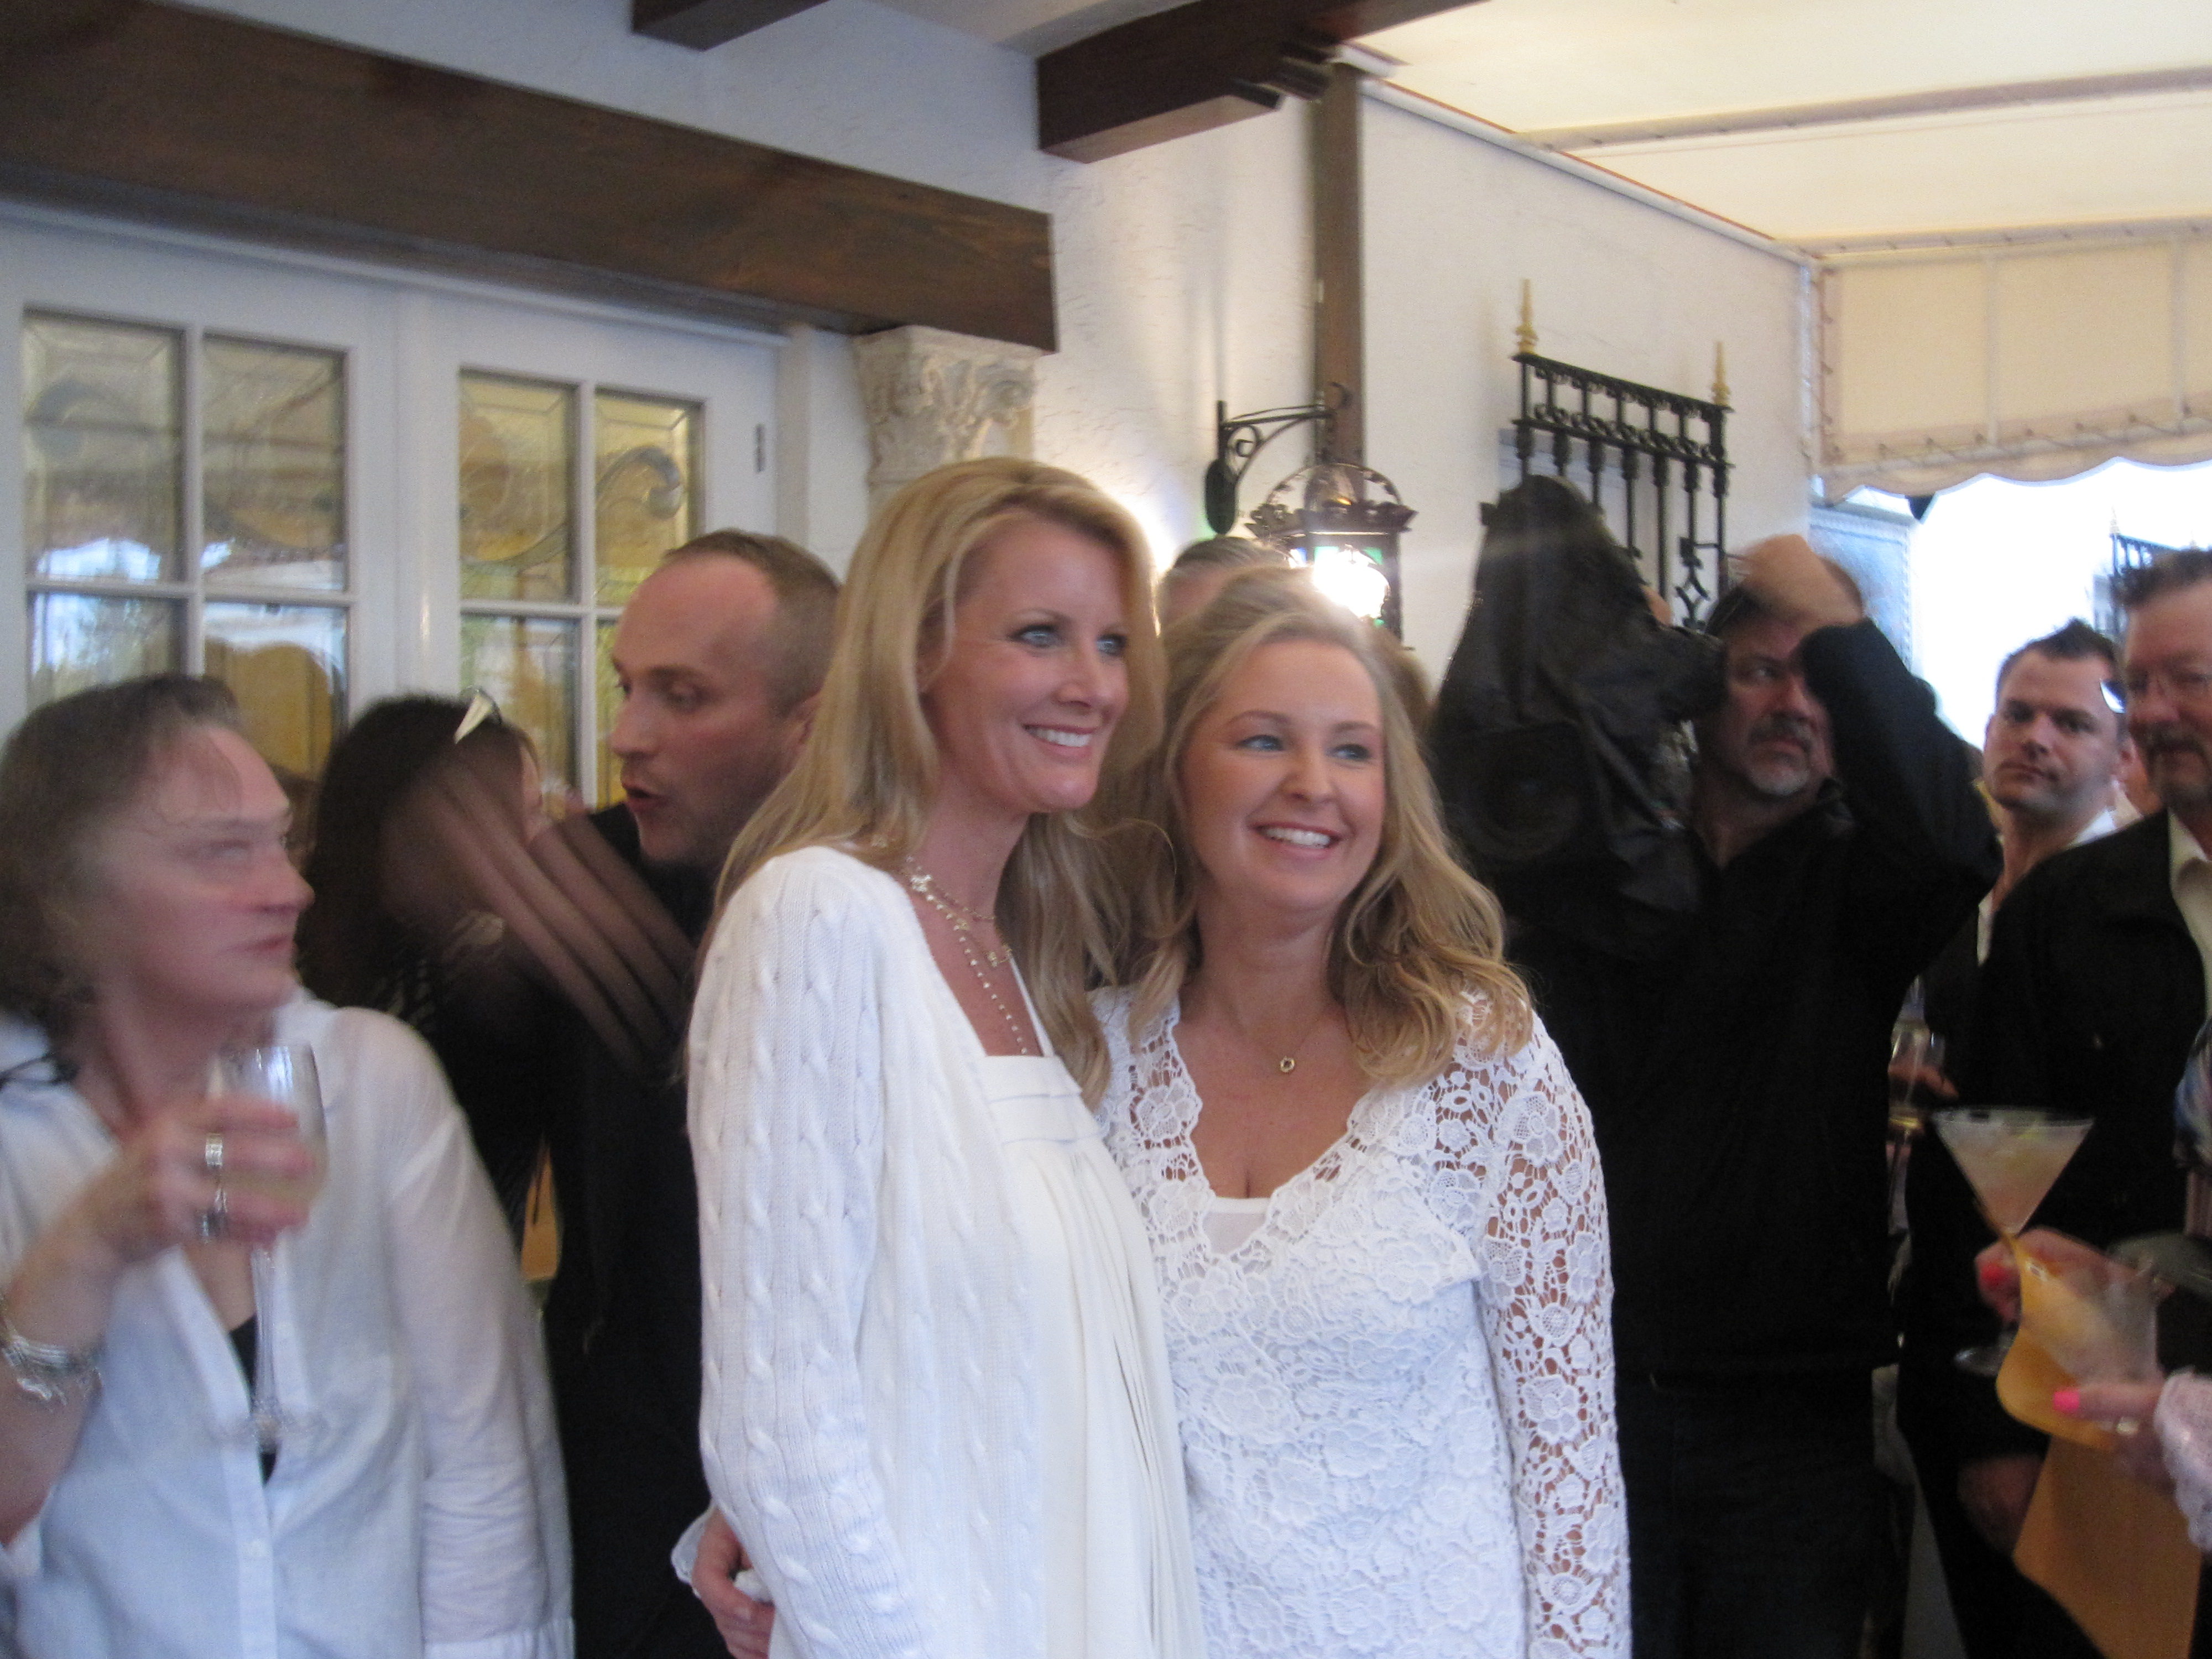 The guest of honor, Sandra Lee, posing with her sister, Kimmy.